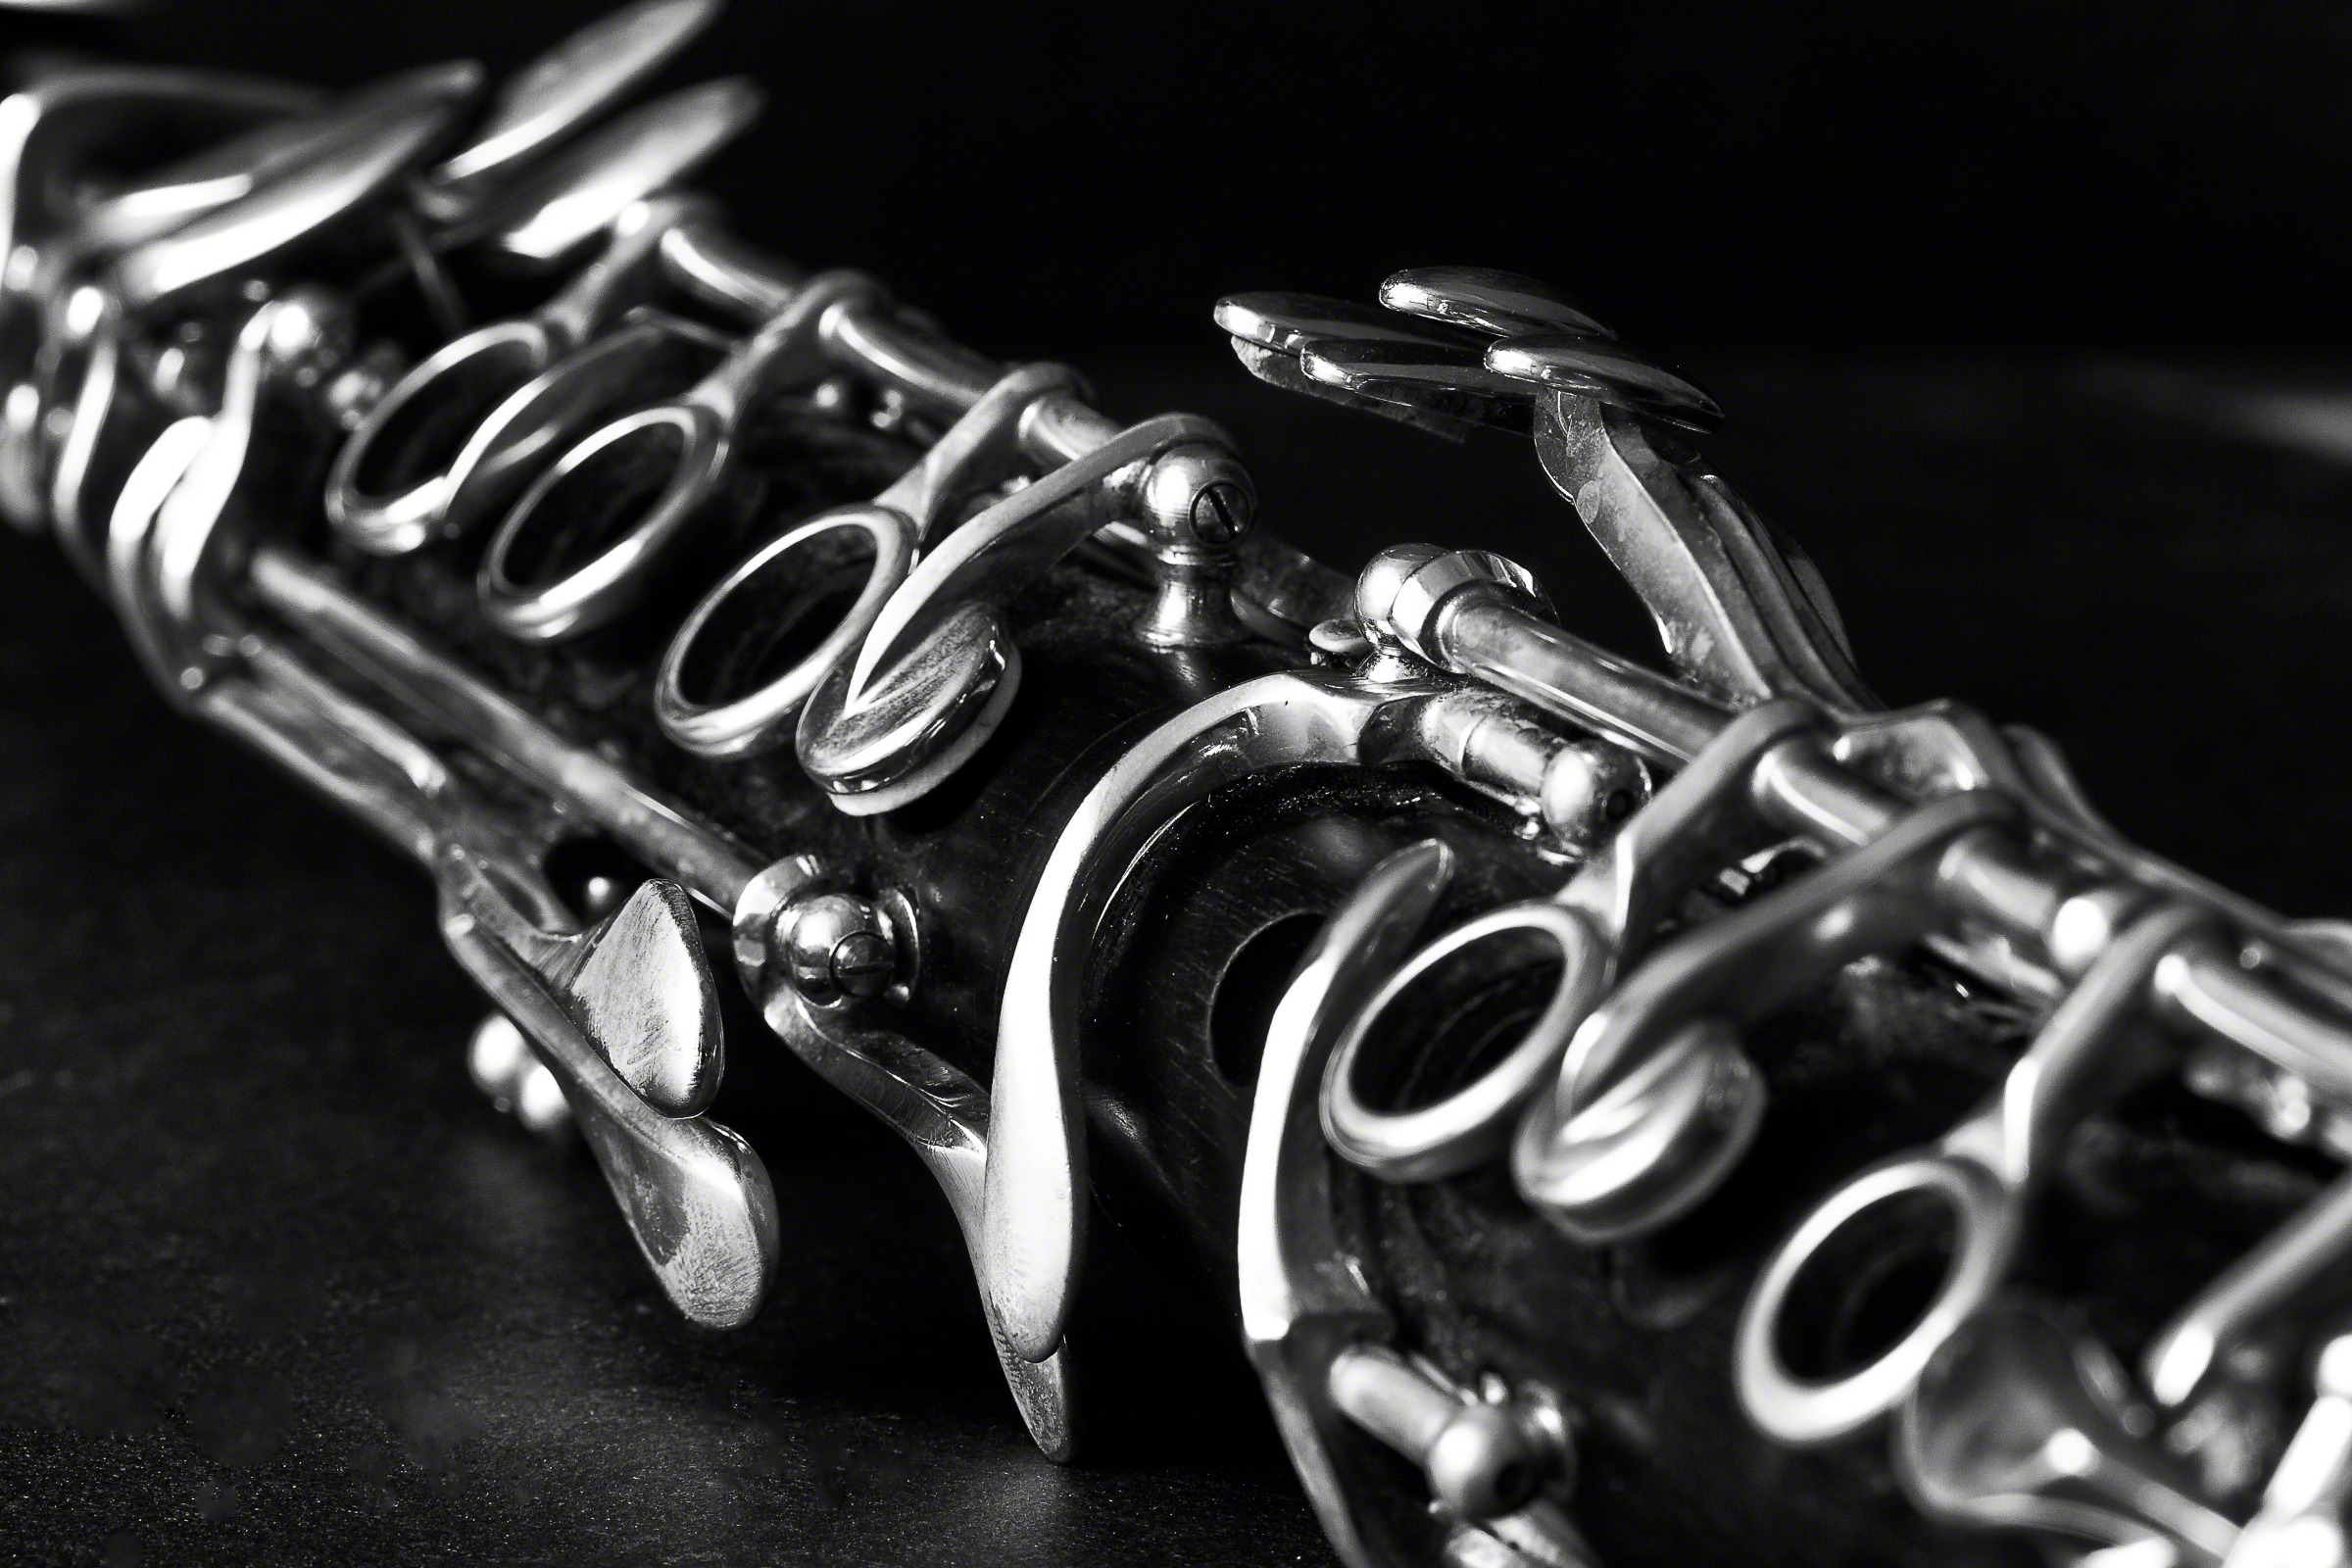 clarinet up close hd wallpaper 22